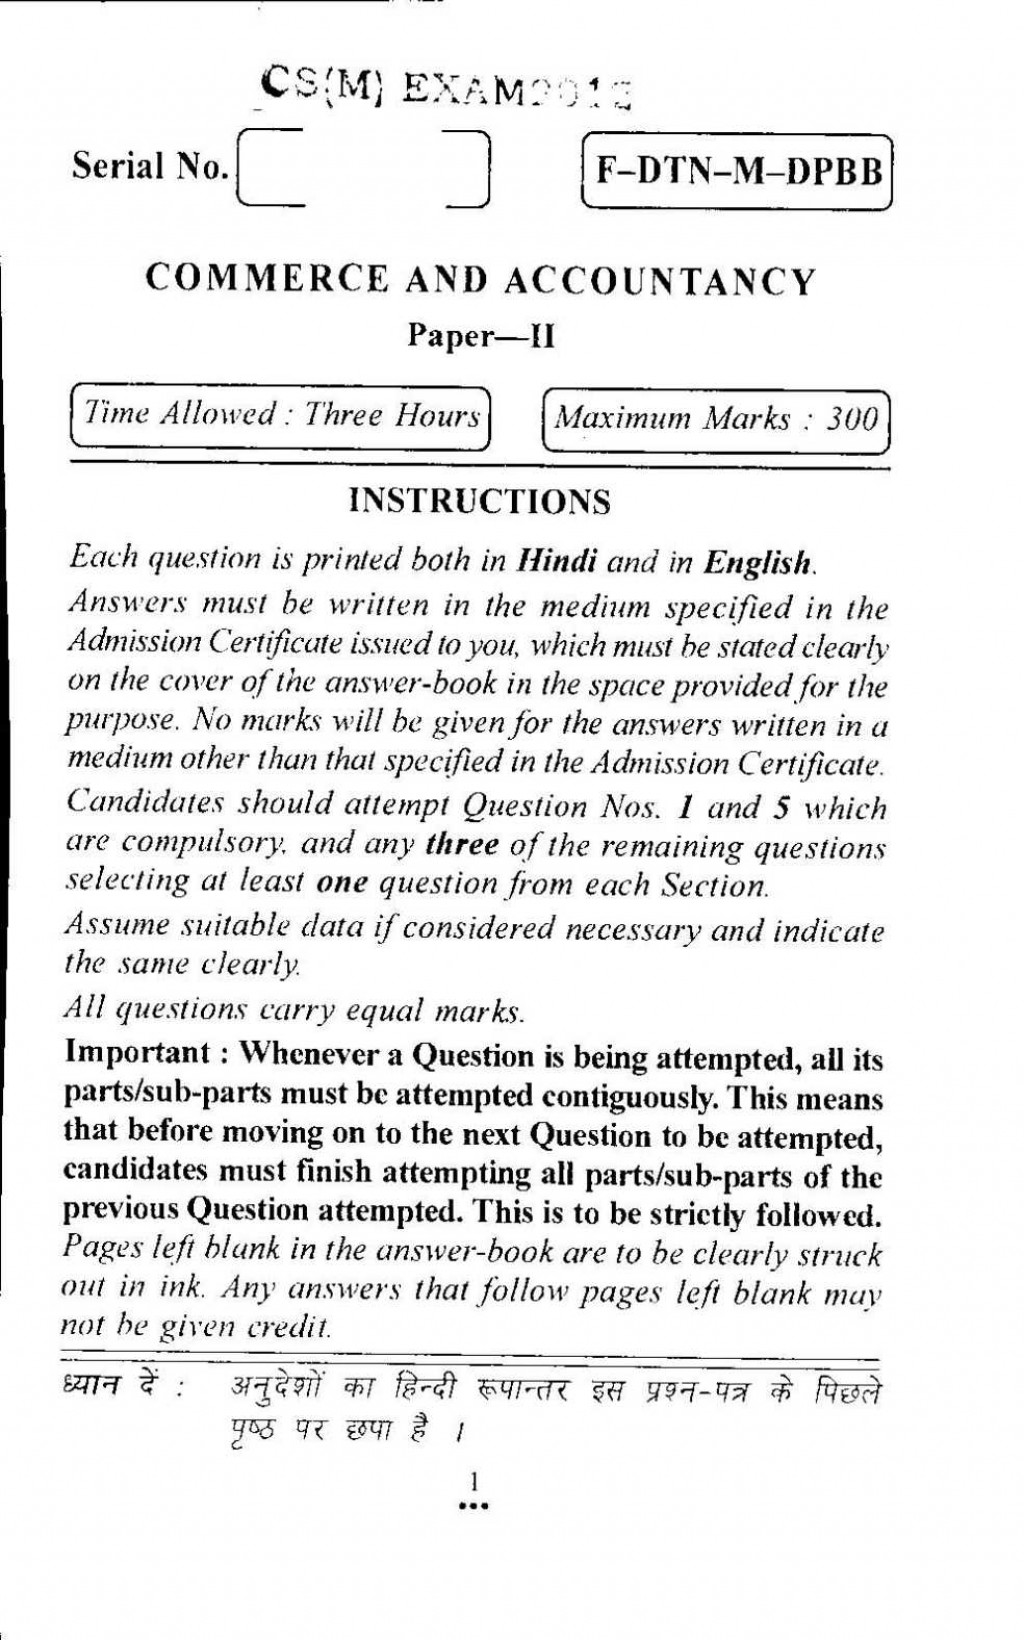 013 Civil Services Examination Commerce And Accountancy Paper Ii Previous Years Que Essay On Racism Exceptional In Hindi Conclusion Othello Large